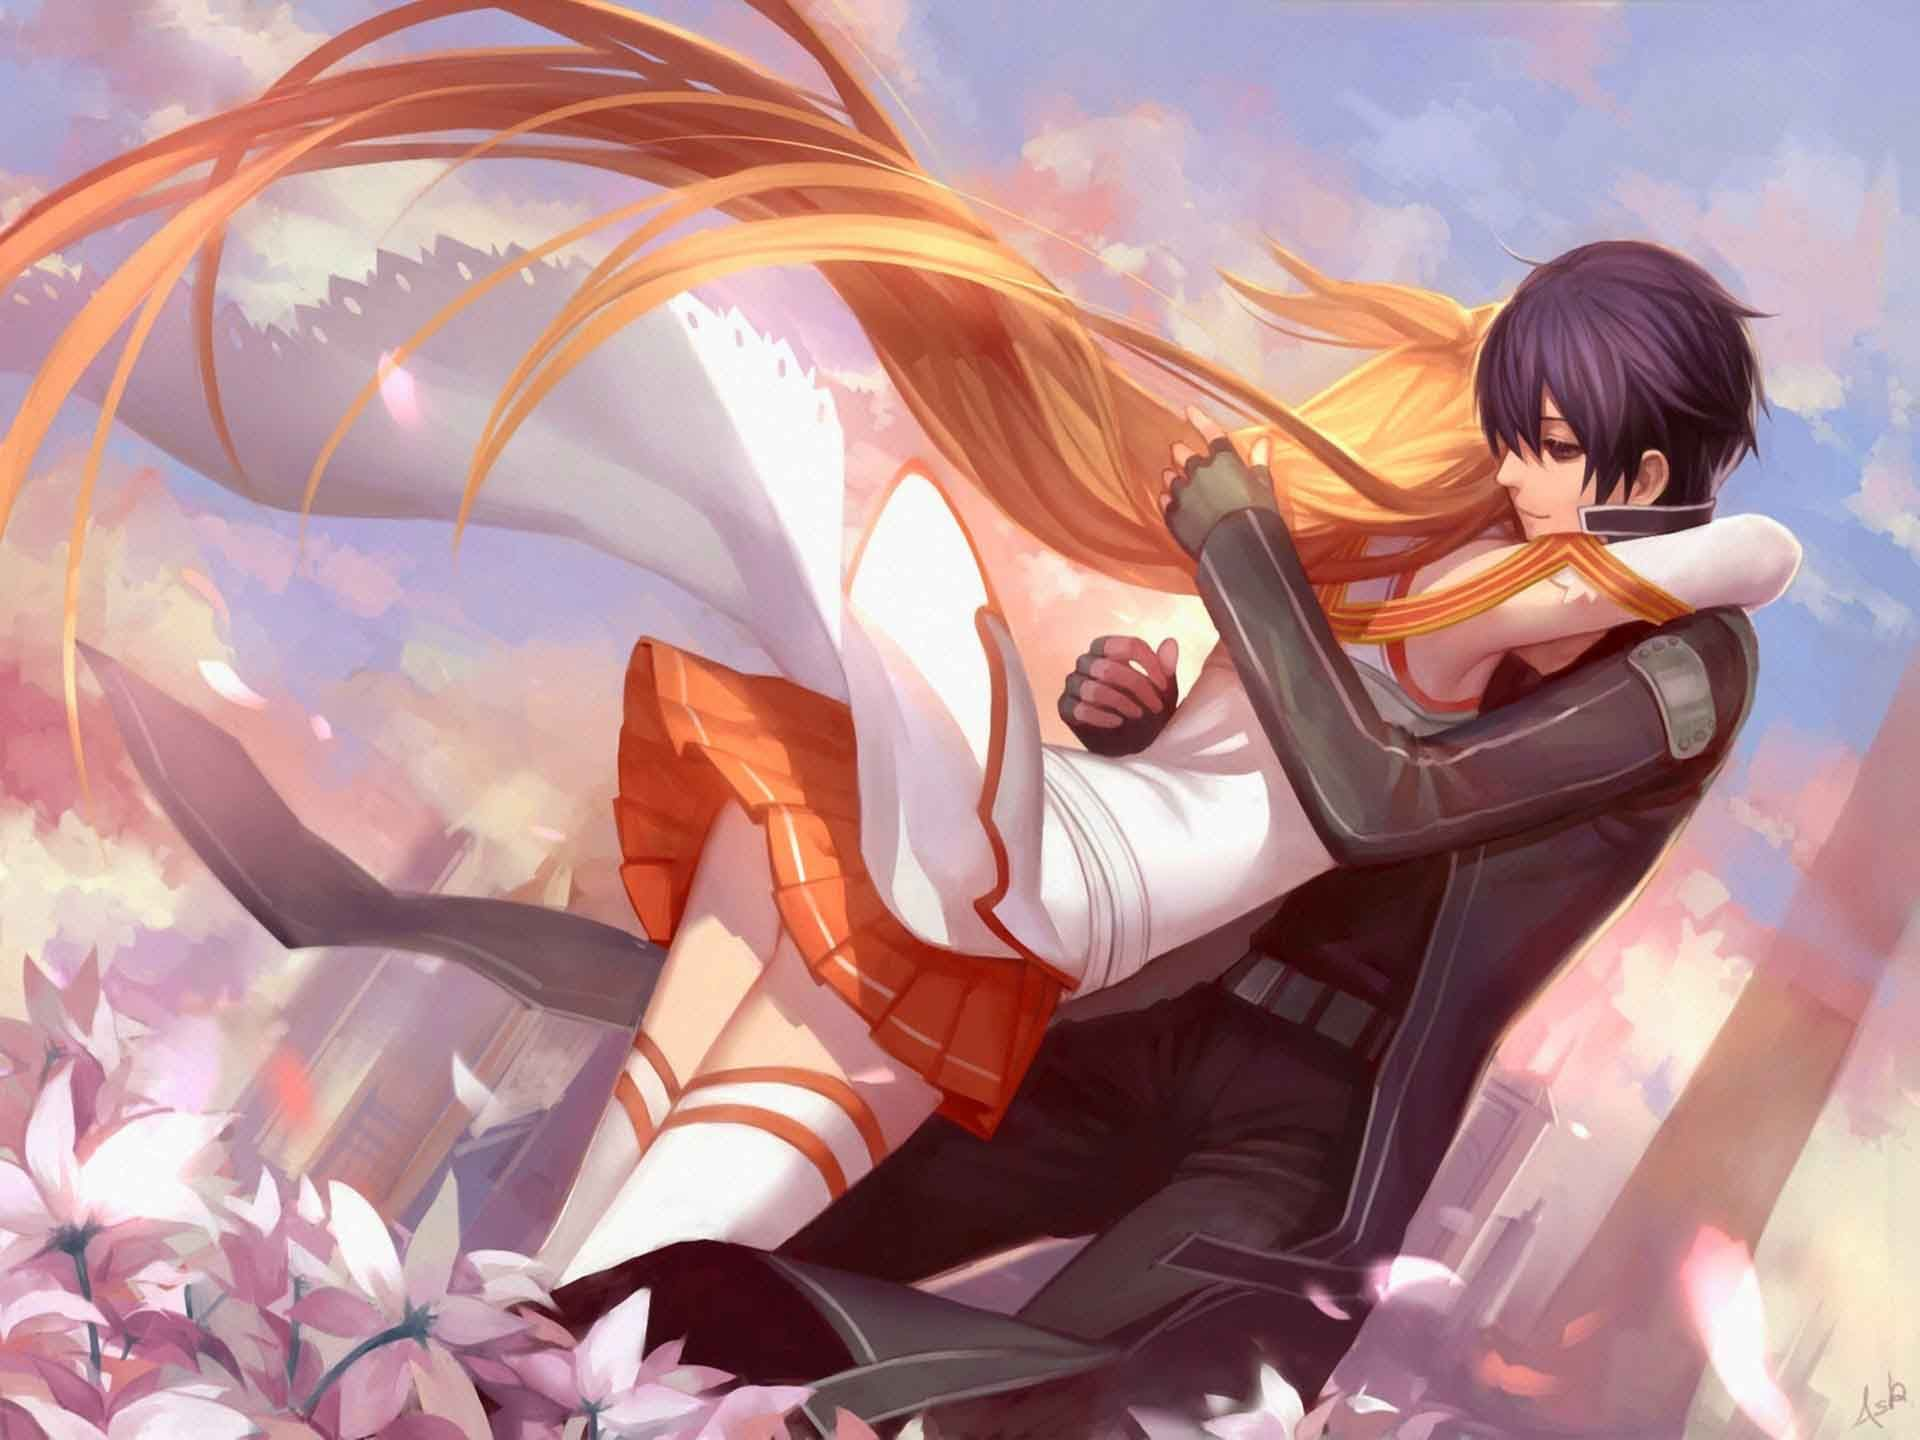 Download Anime Hug Wallpaper By Dj Ivory 5e Free On Zedge Now Browse Millions Of Popular Anime W Sword Art Sword Art Online Kirito Sword Art Online Asuna